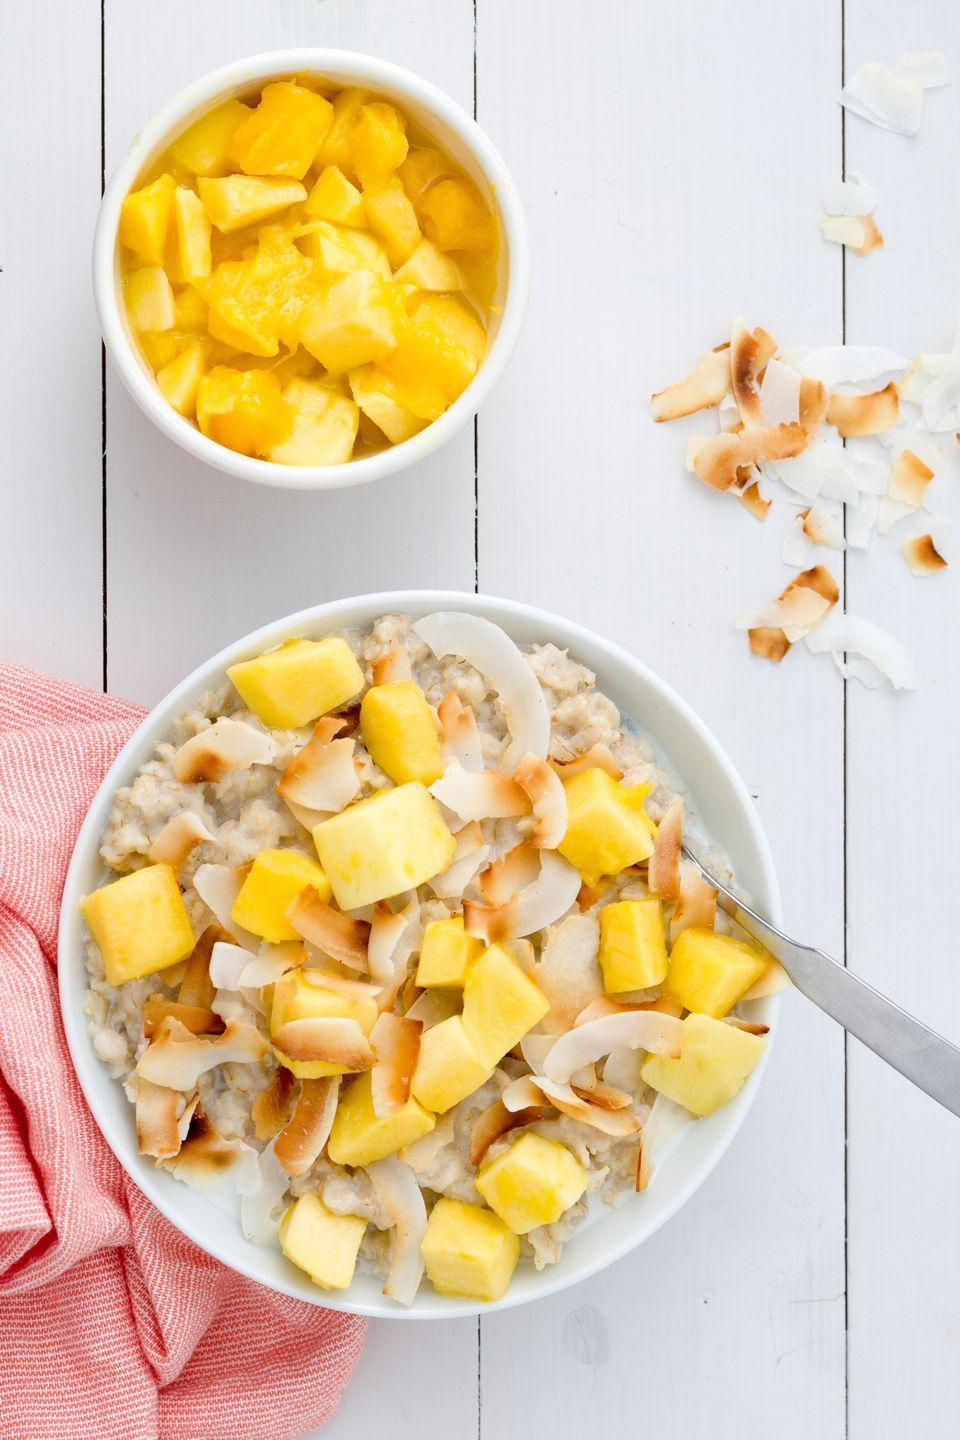 "<p>Cooking the oatmeal in coconut milk gives this bowl a subtly sweet flavor and extra-creamy texture. Topped with mango and toasted coconut flakes, each bite gets you one step closer to the Tropics.</p><p>Get the recipe from <a href=""/cooking/recipe-ideas/recipes/a44492/tropical-oatmeal-recipe/"" data-ylk=""slk:Delish"" class=""link rapid-noclick-resp"">Delish</a>.</p>"